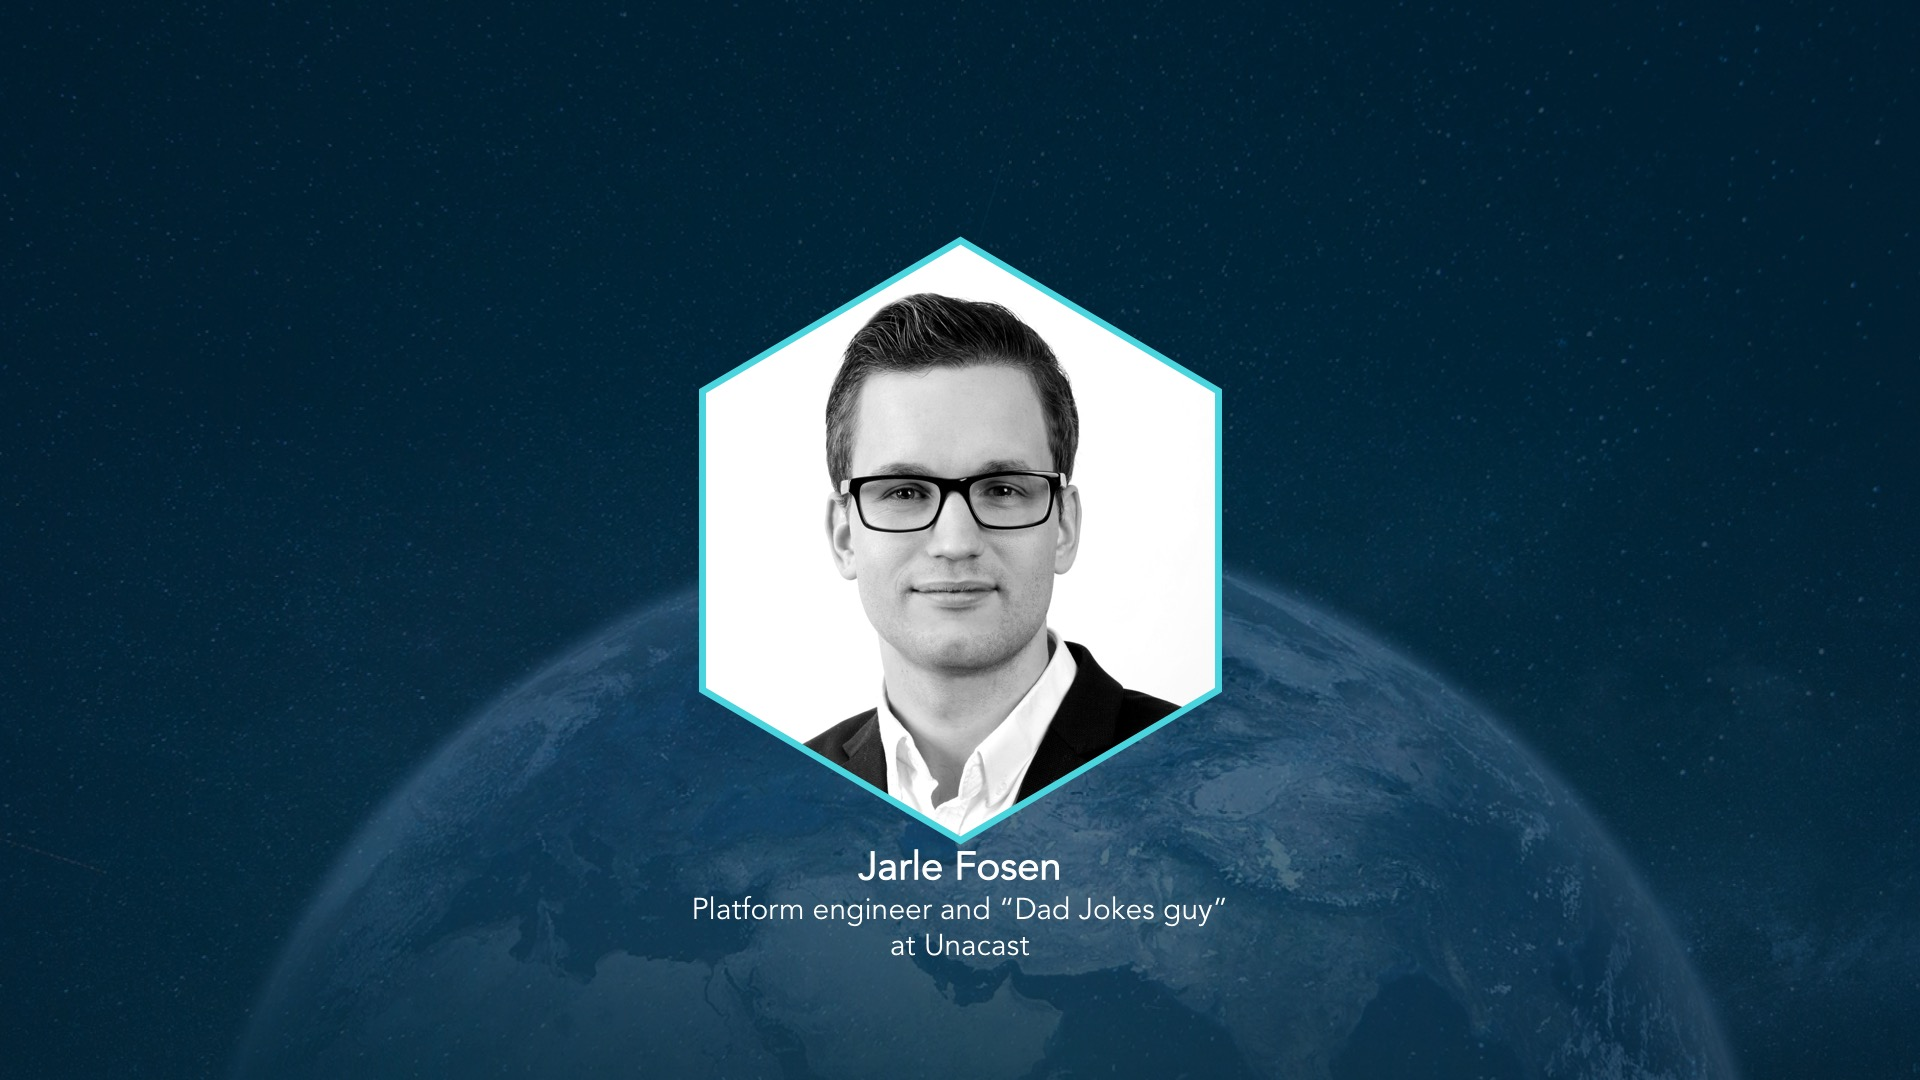 Presenting our team - Hello, Jarle